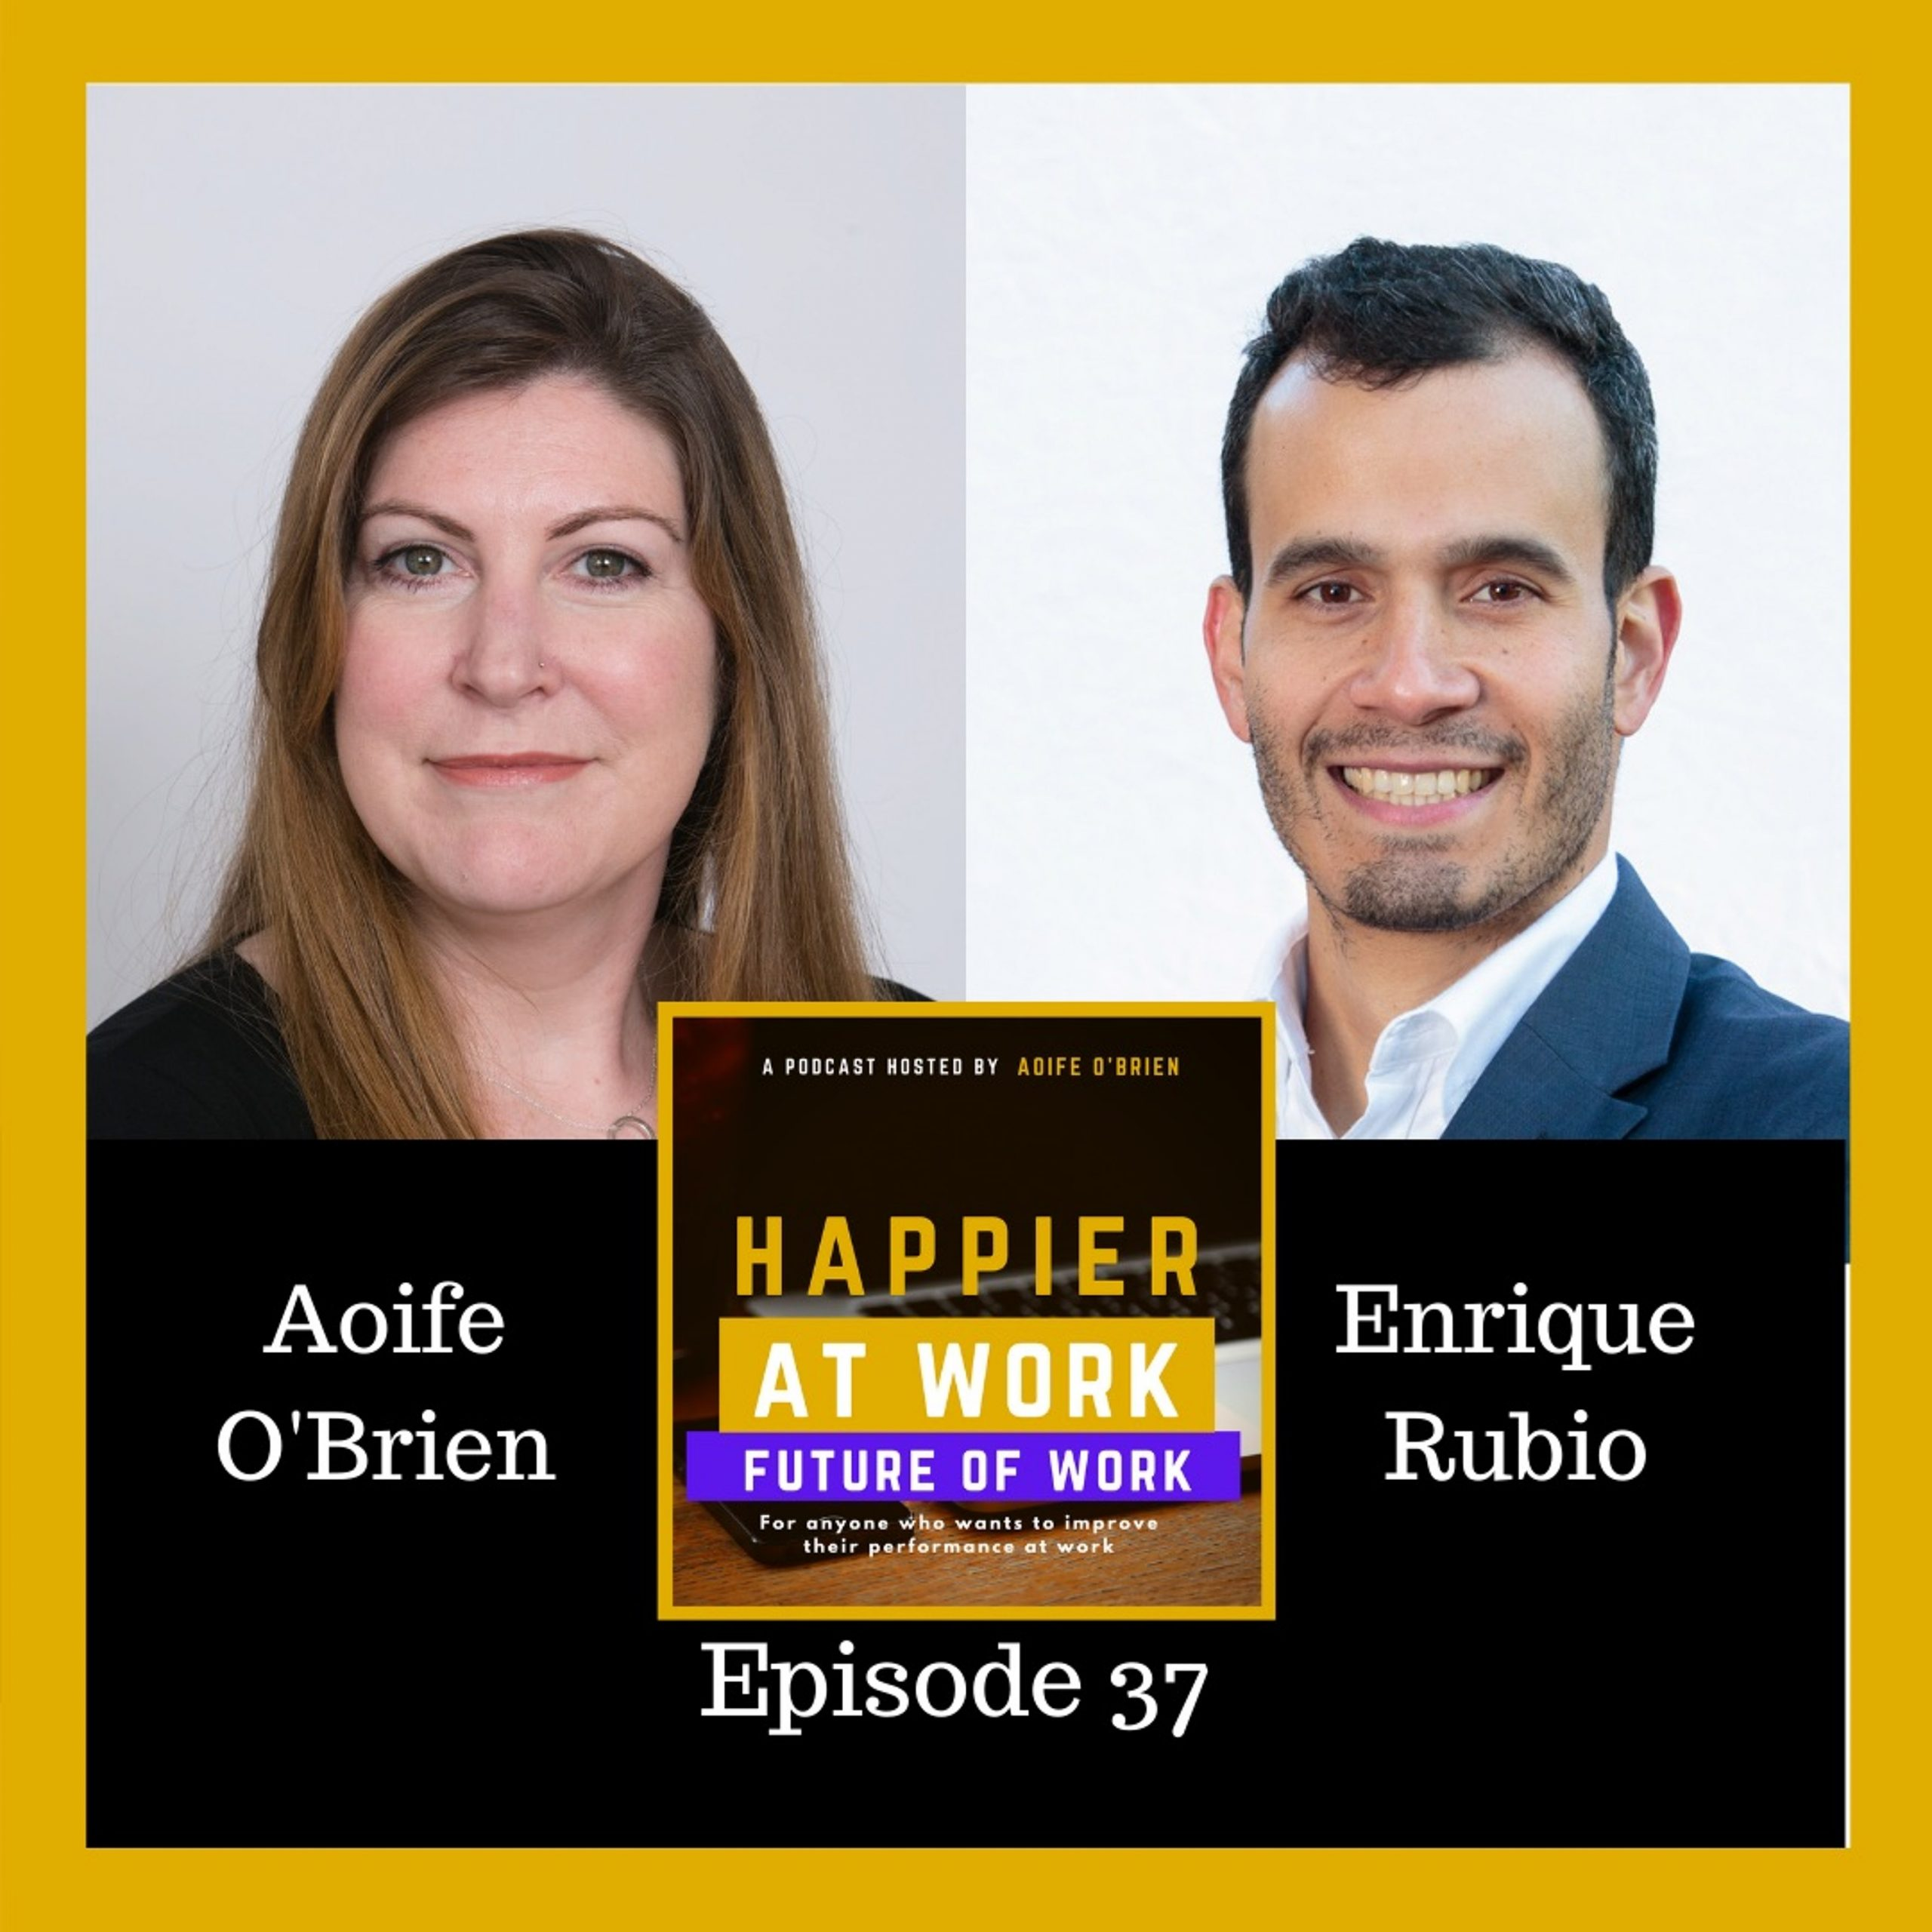 Happier at work podcast Enrique Rubio